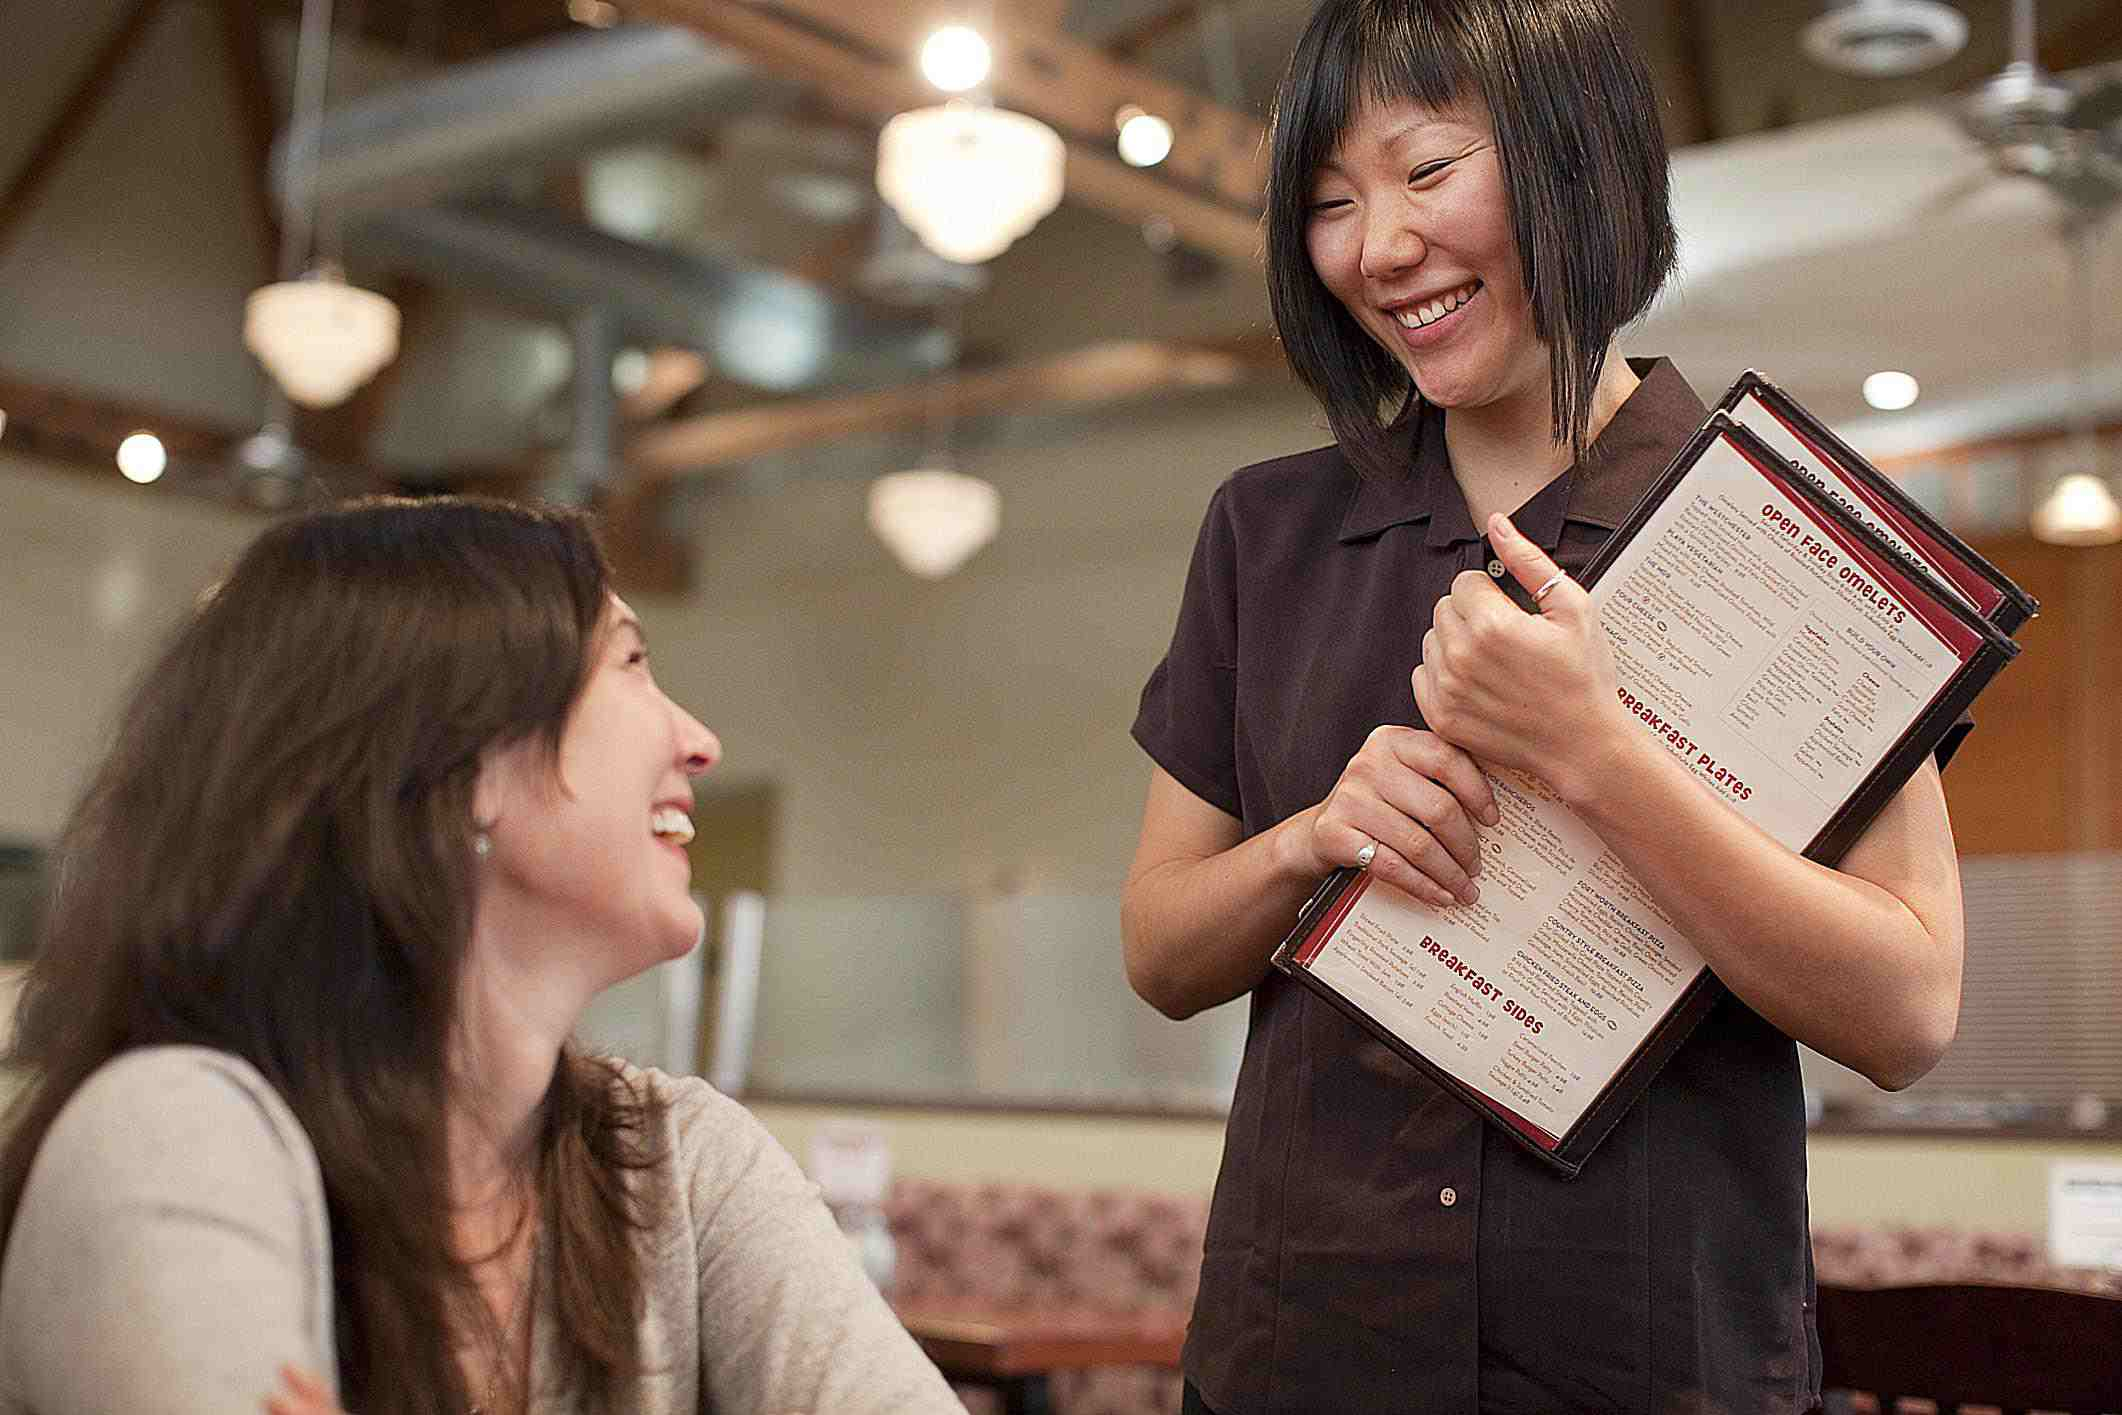 A waitress with menus in hand talking to a customer.